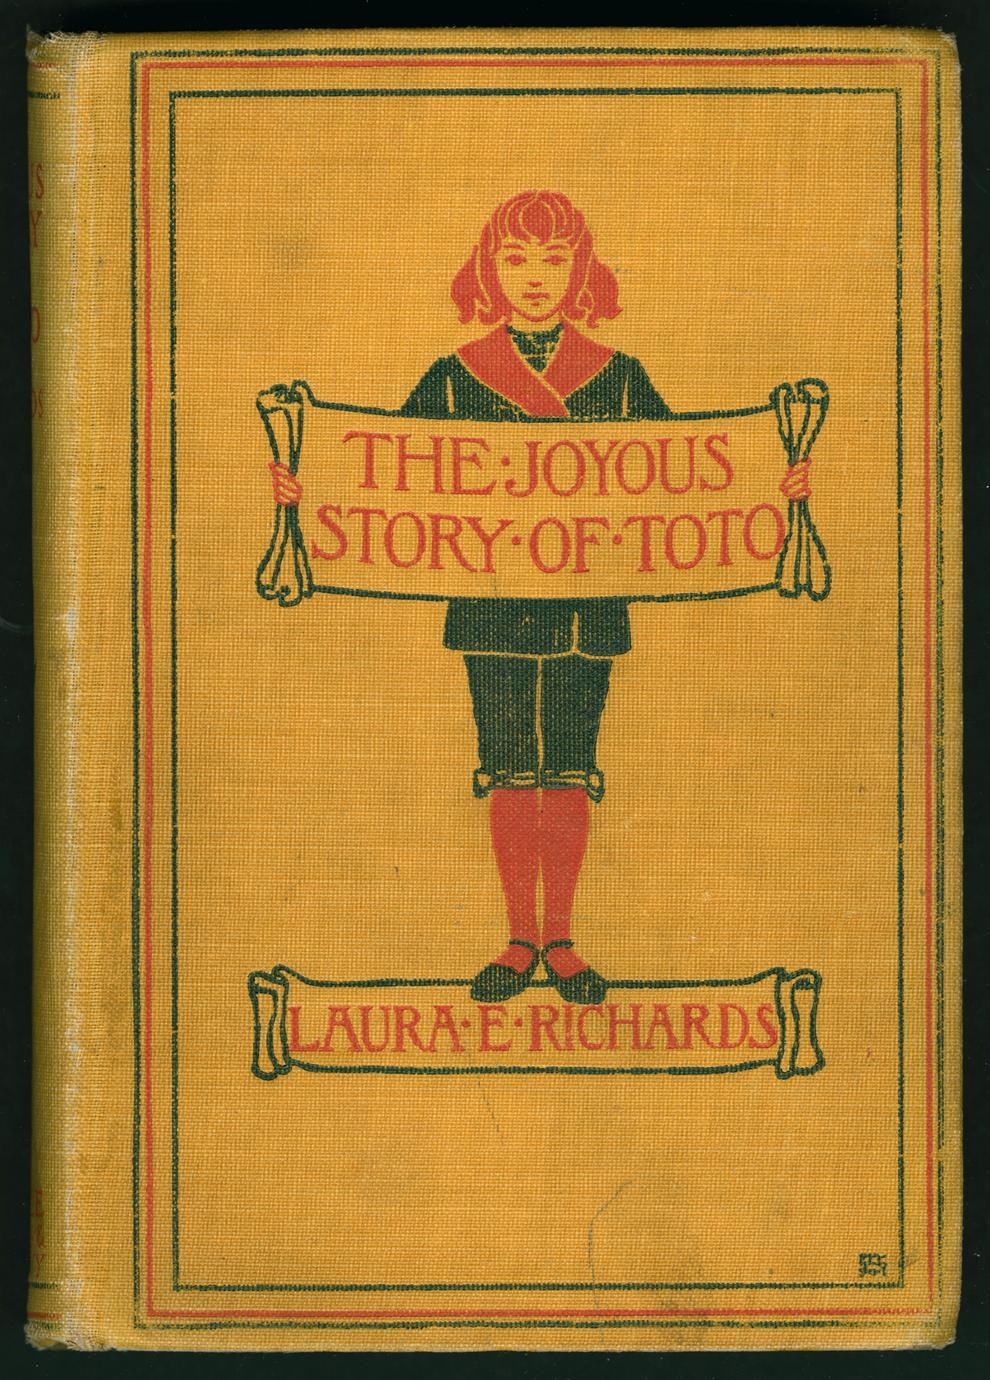 The joyous story of Toto (1 of 3)